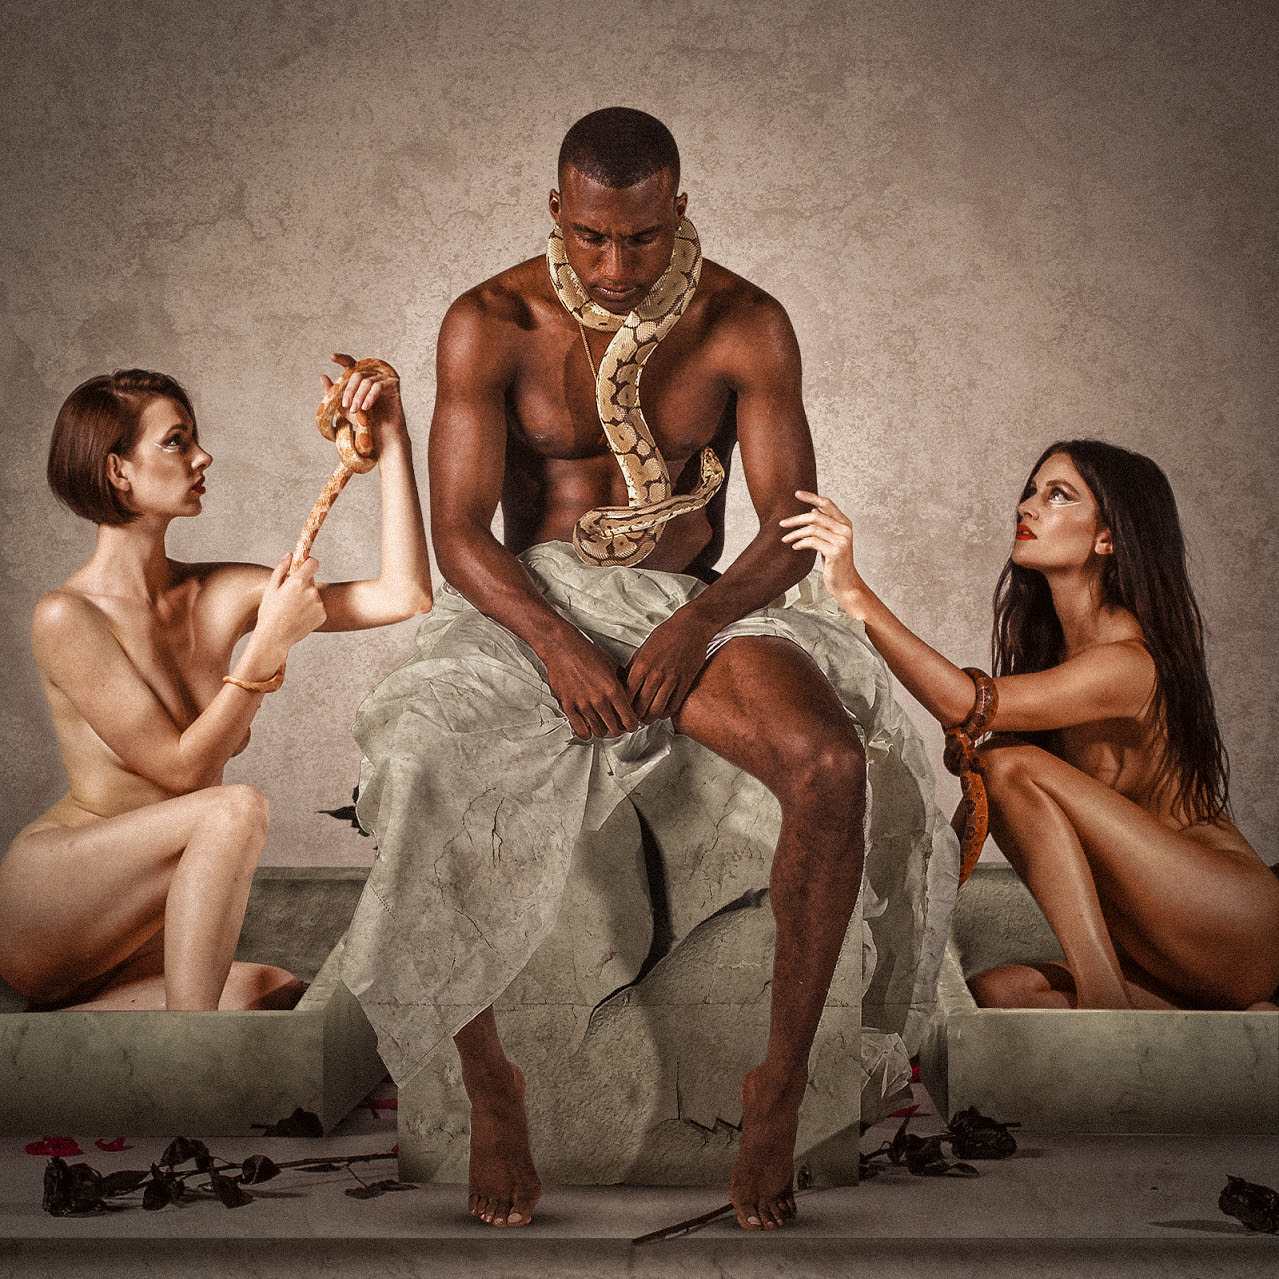 Our review of 'No Shame' by Hopsin